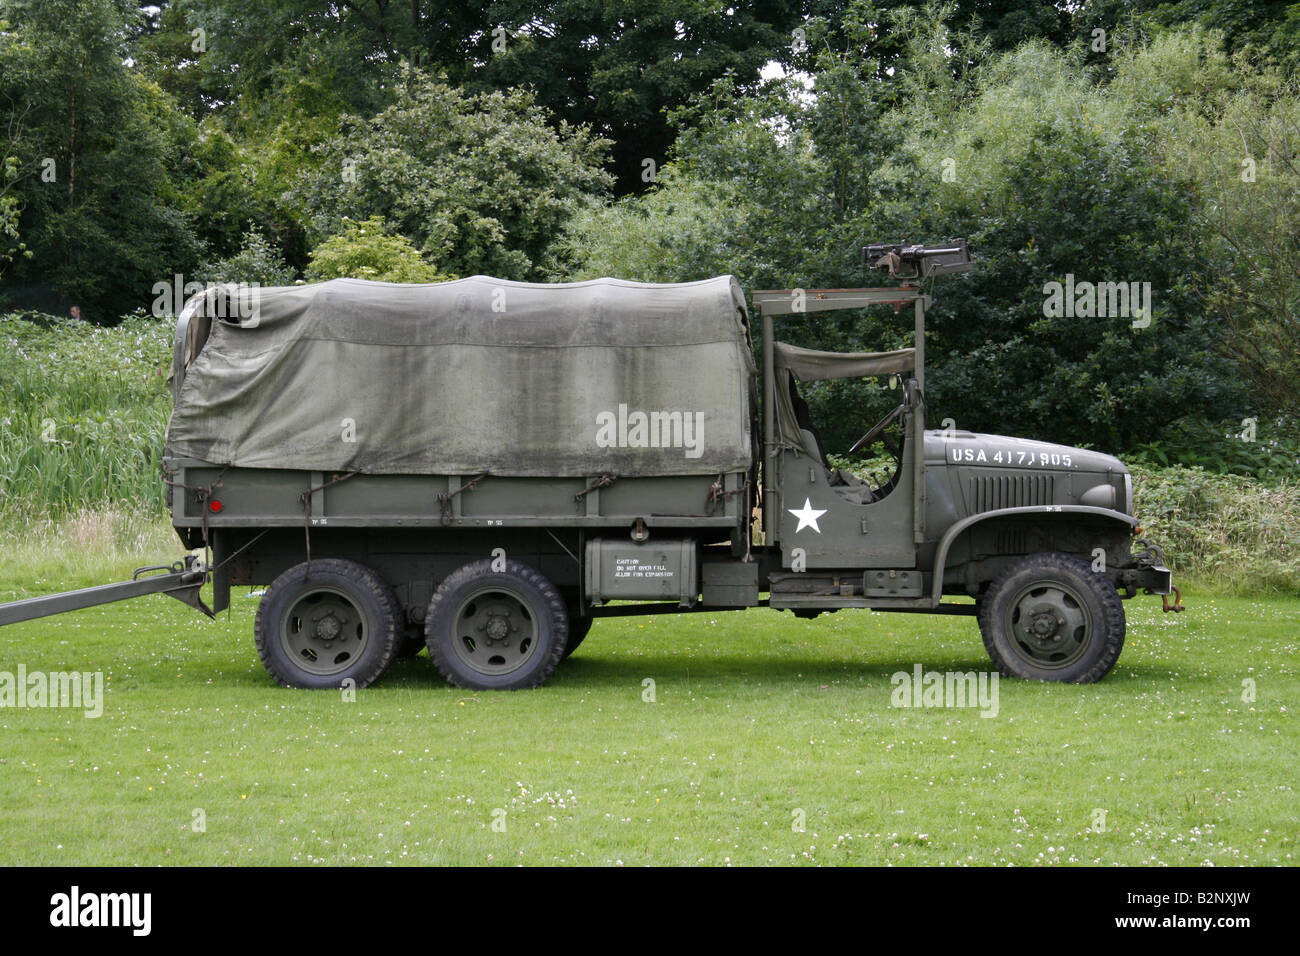 World War 2 Army Truck with machine gun mounted on the cab, at a show Stock Photo: 18921585 - Alamy